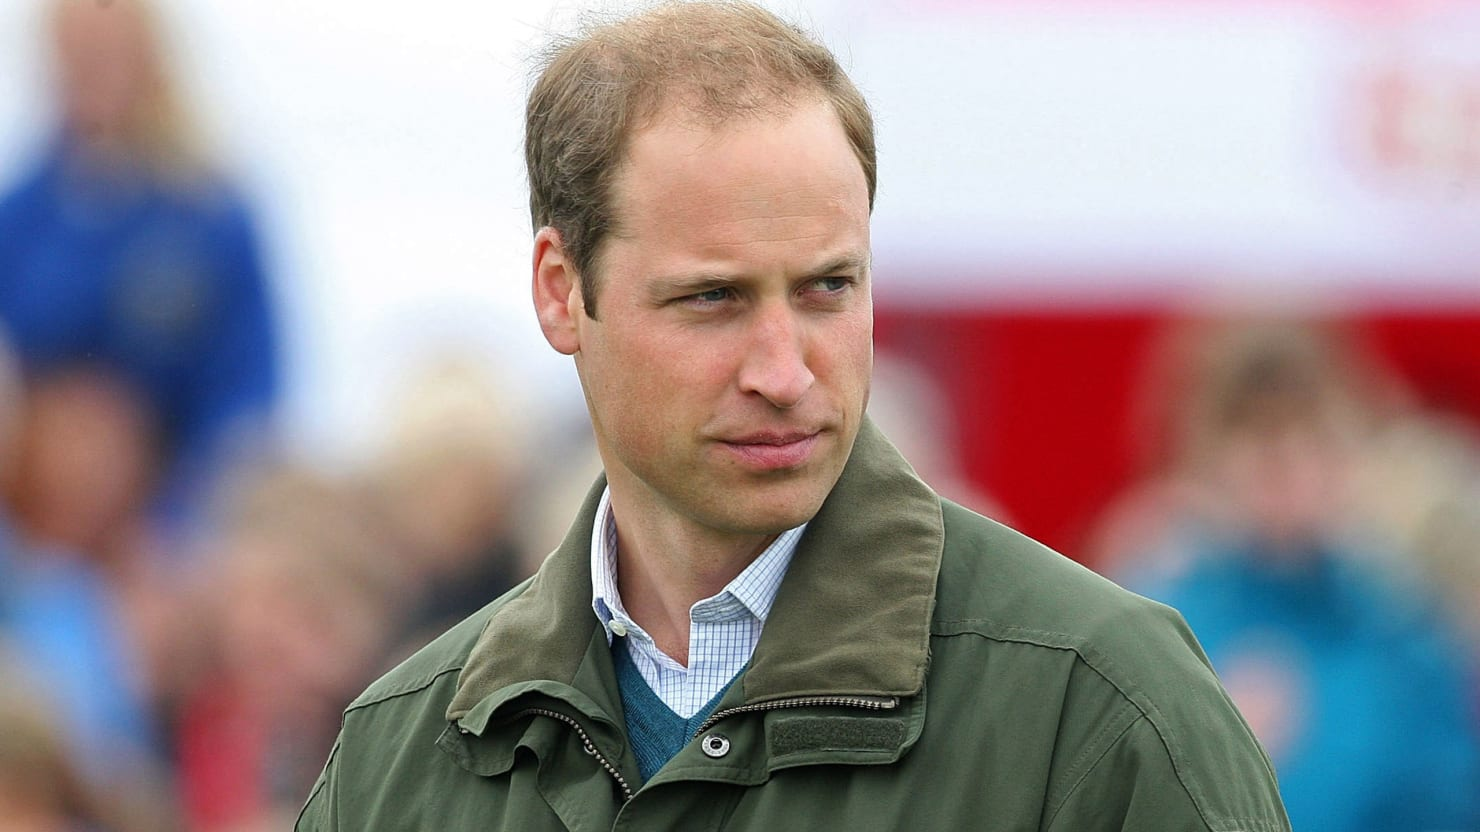 Is Prince William Too Thick for Cambridge University?